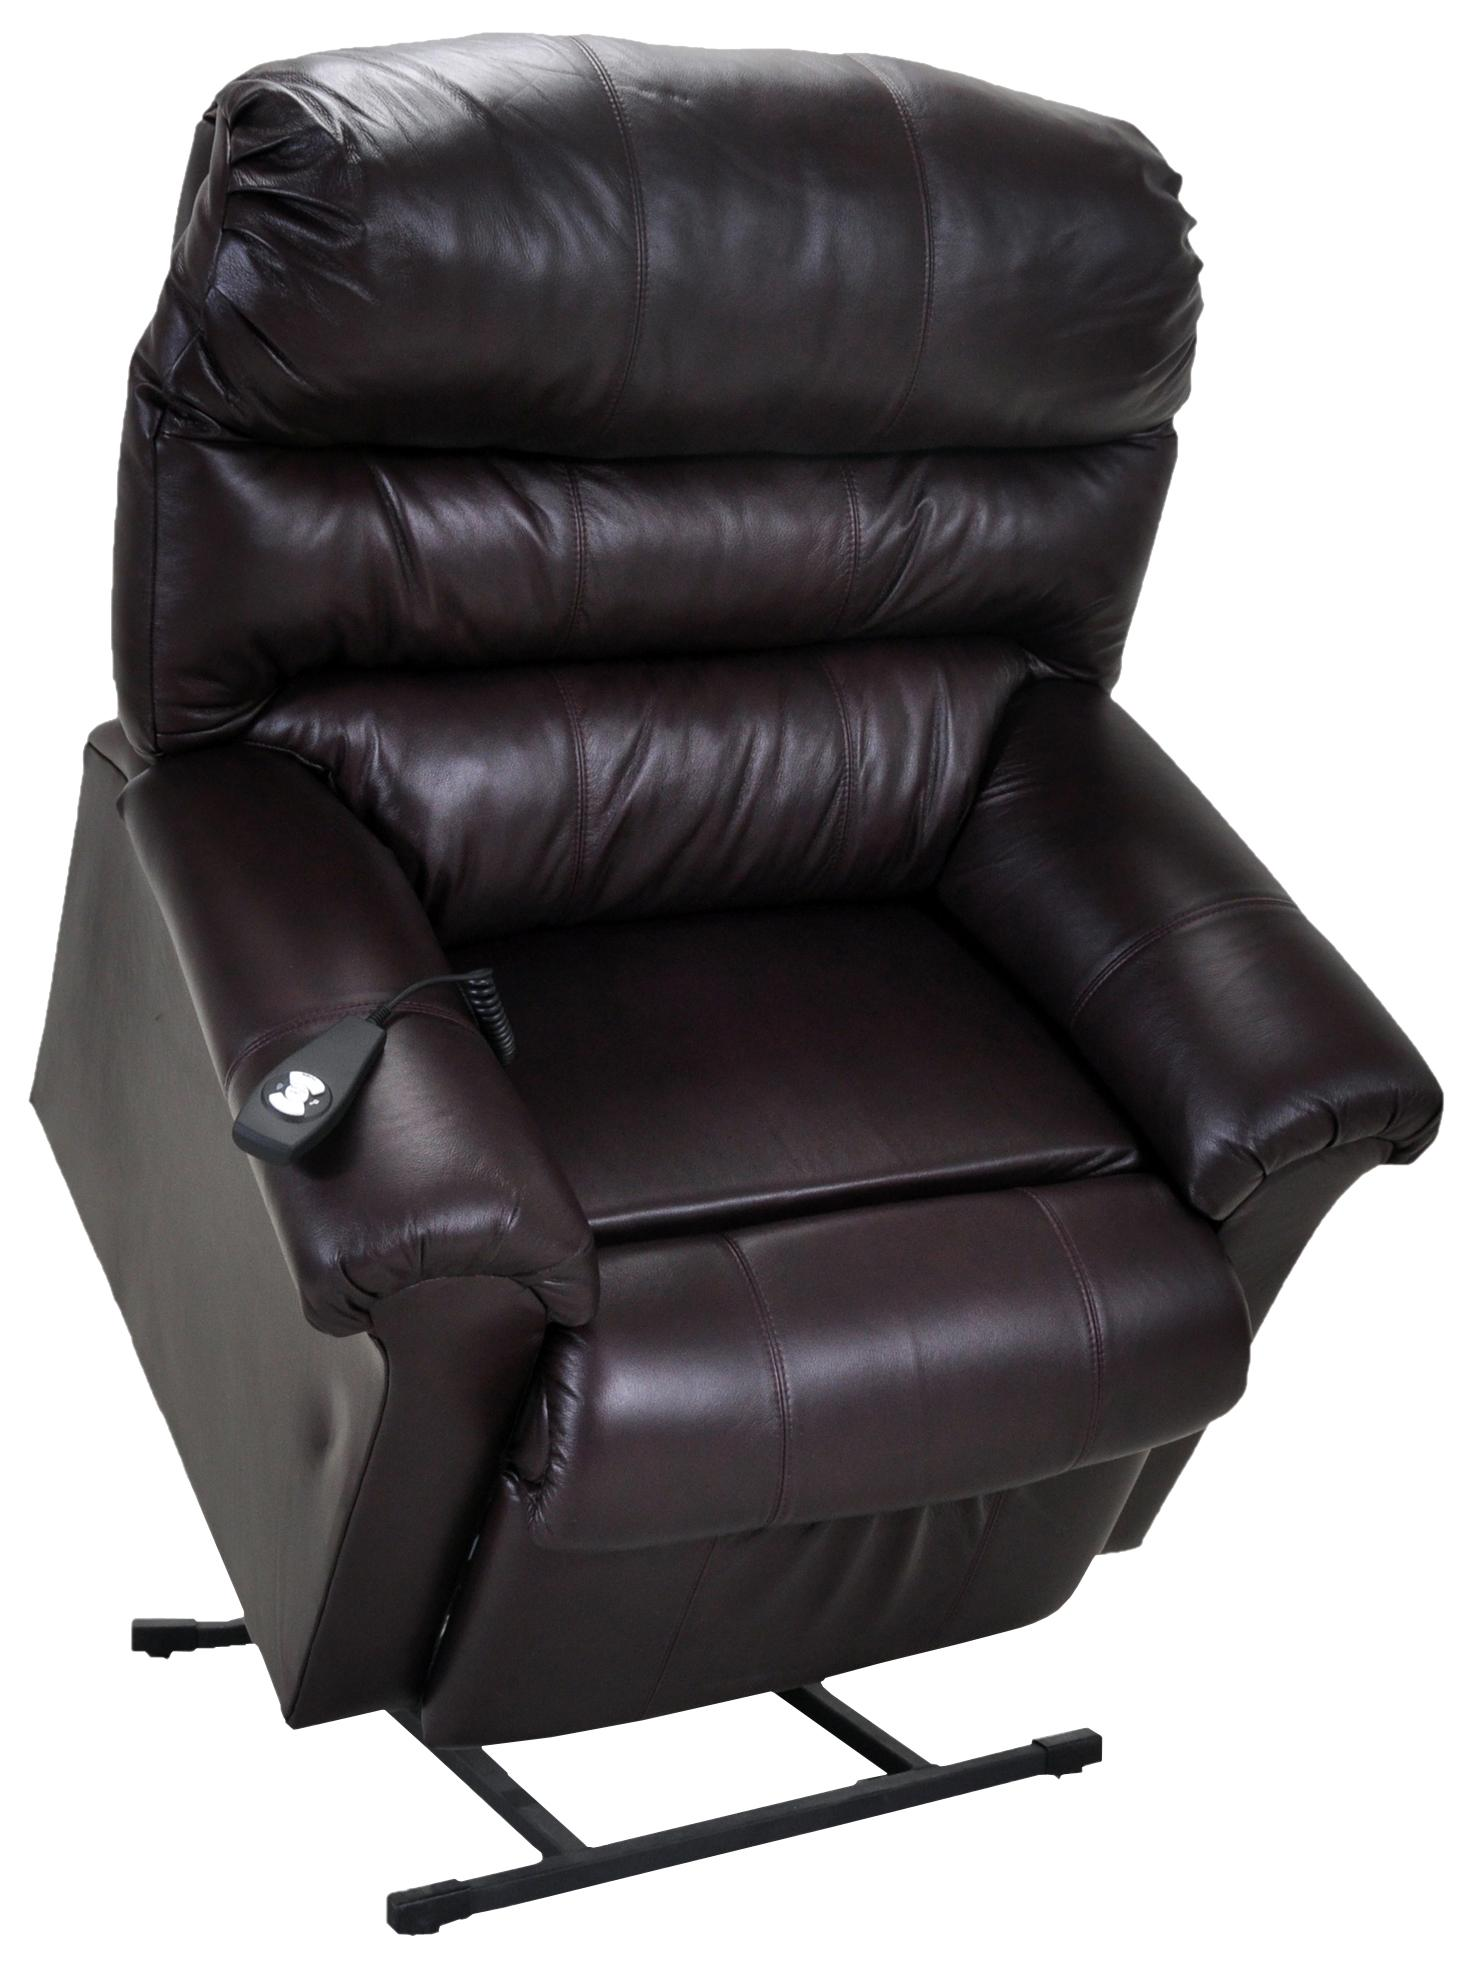 Franklin Lift and Power Recliners 498 LM 1075 Chocolate